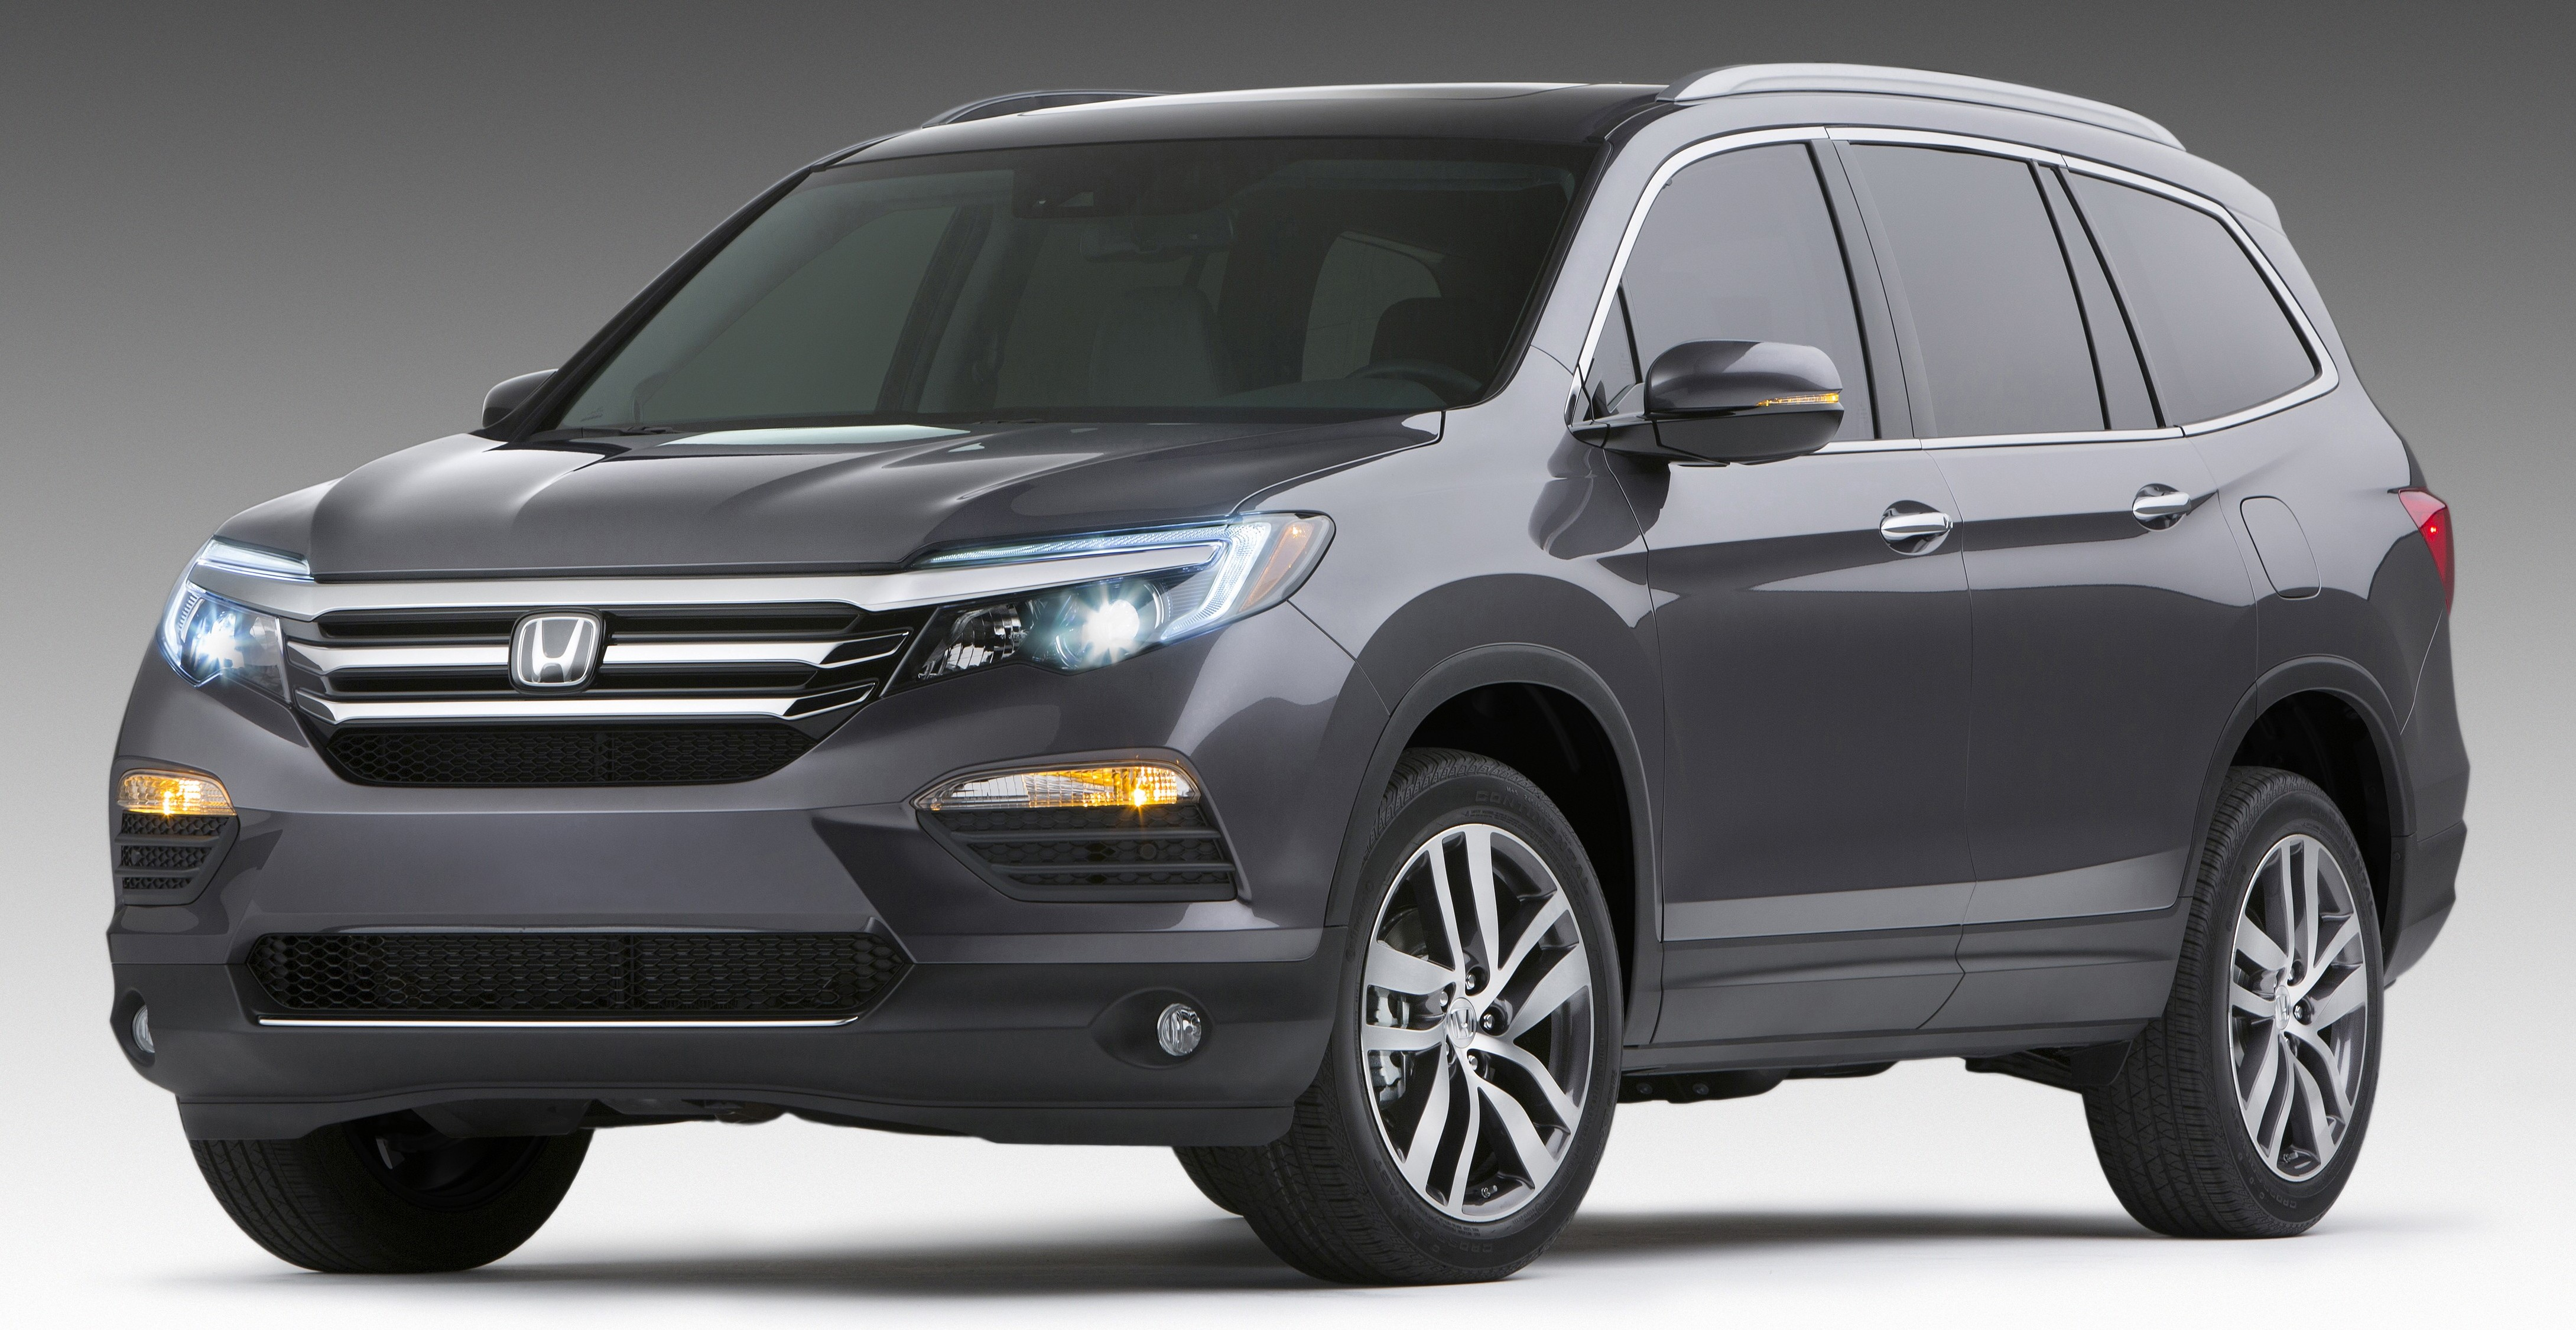 2017 honda cr v 7 seater to form an important pillar in australia with no rhd pilot and. Black Bedroom Furniture Sets. Home Design Ideas